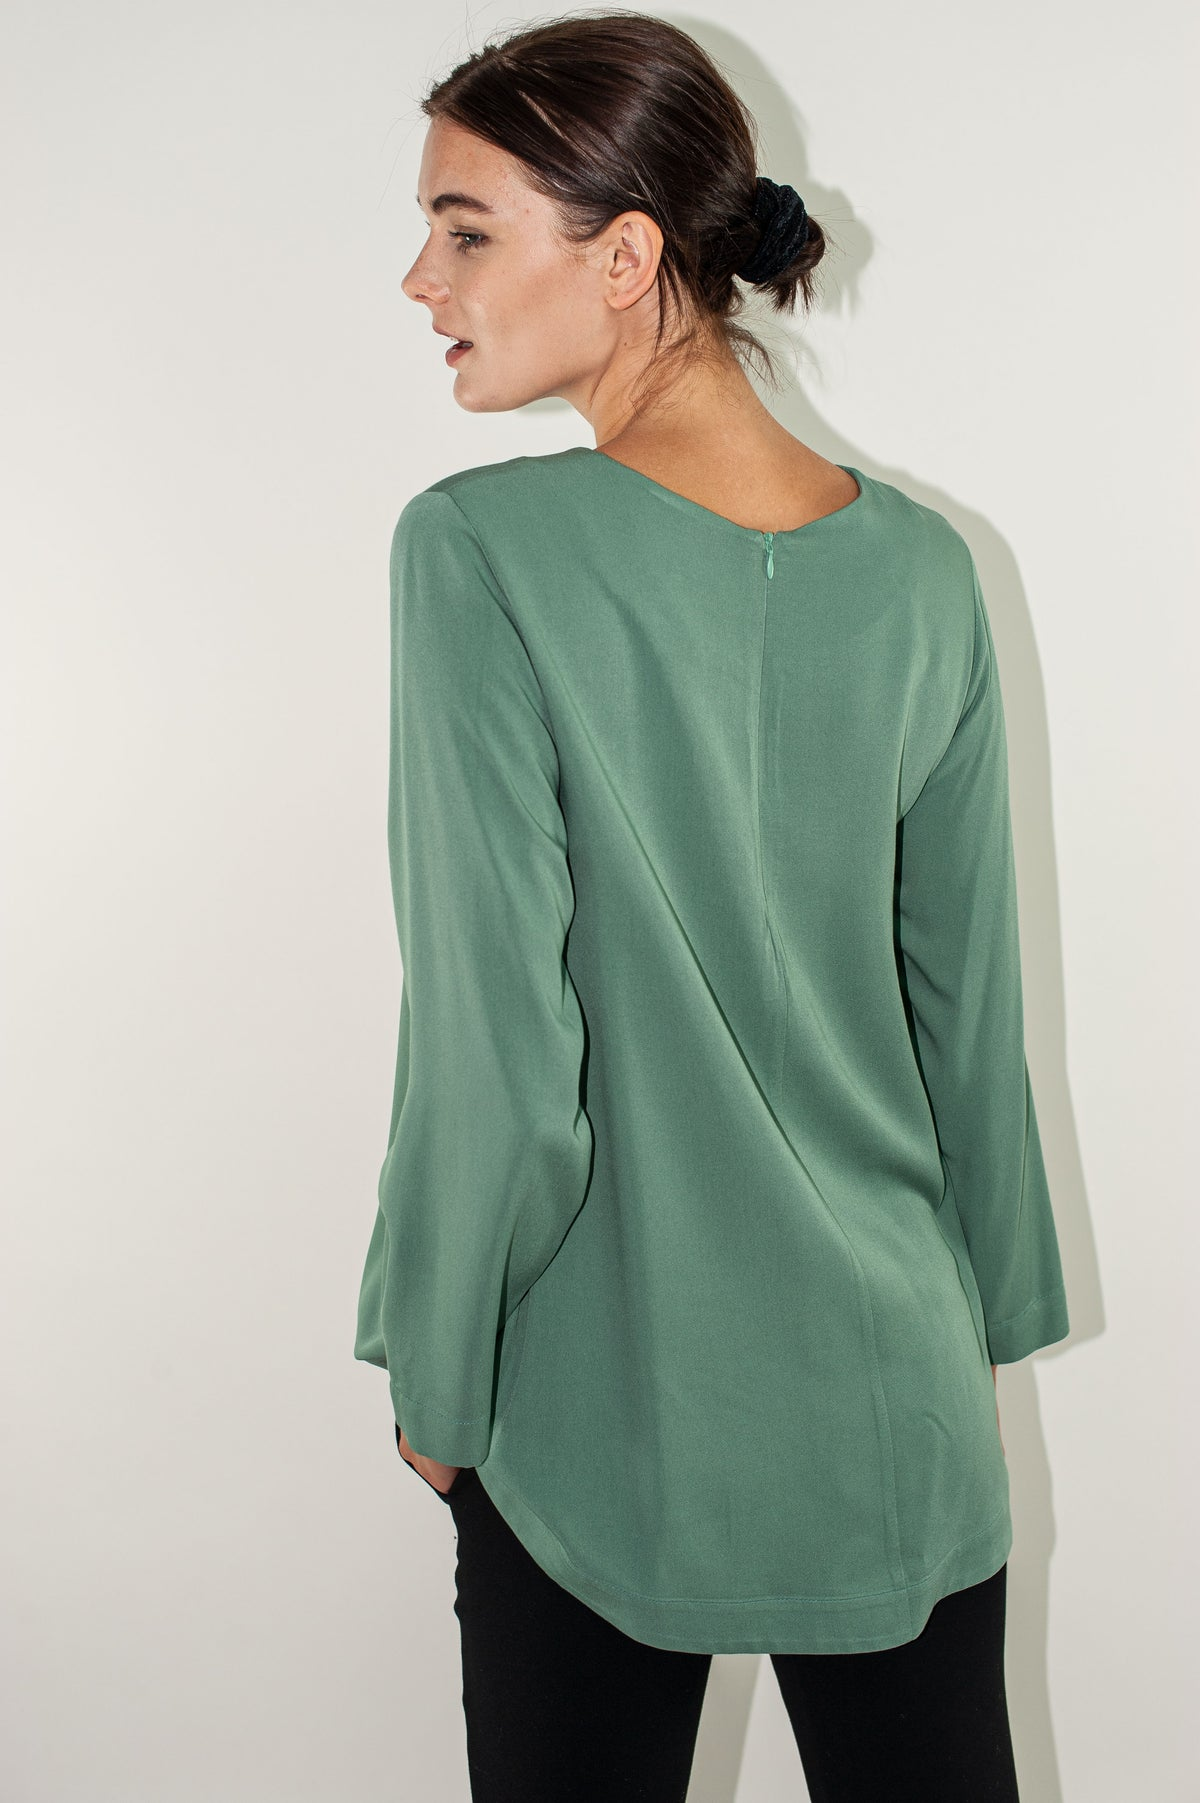 Wildwood - Arcade Top | Light Khaki